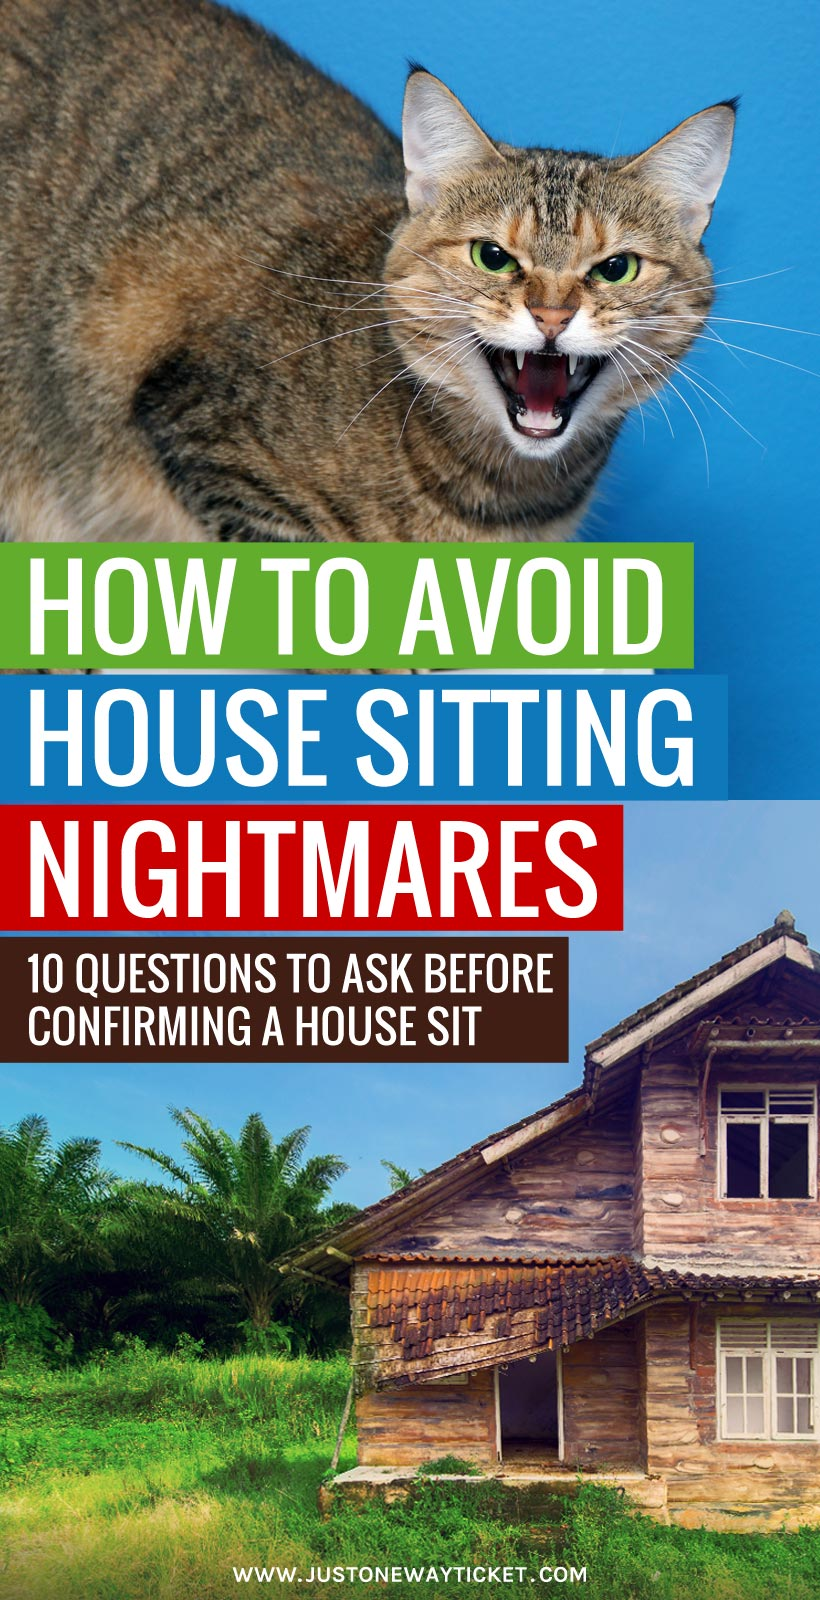 How to Avoid House Sitting Nightmares – 10 Questions to Ask Before Confirming a House Sit